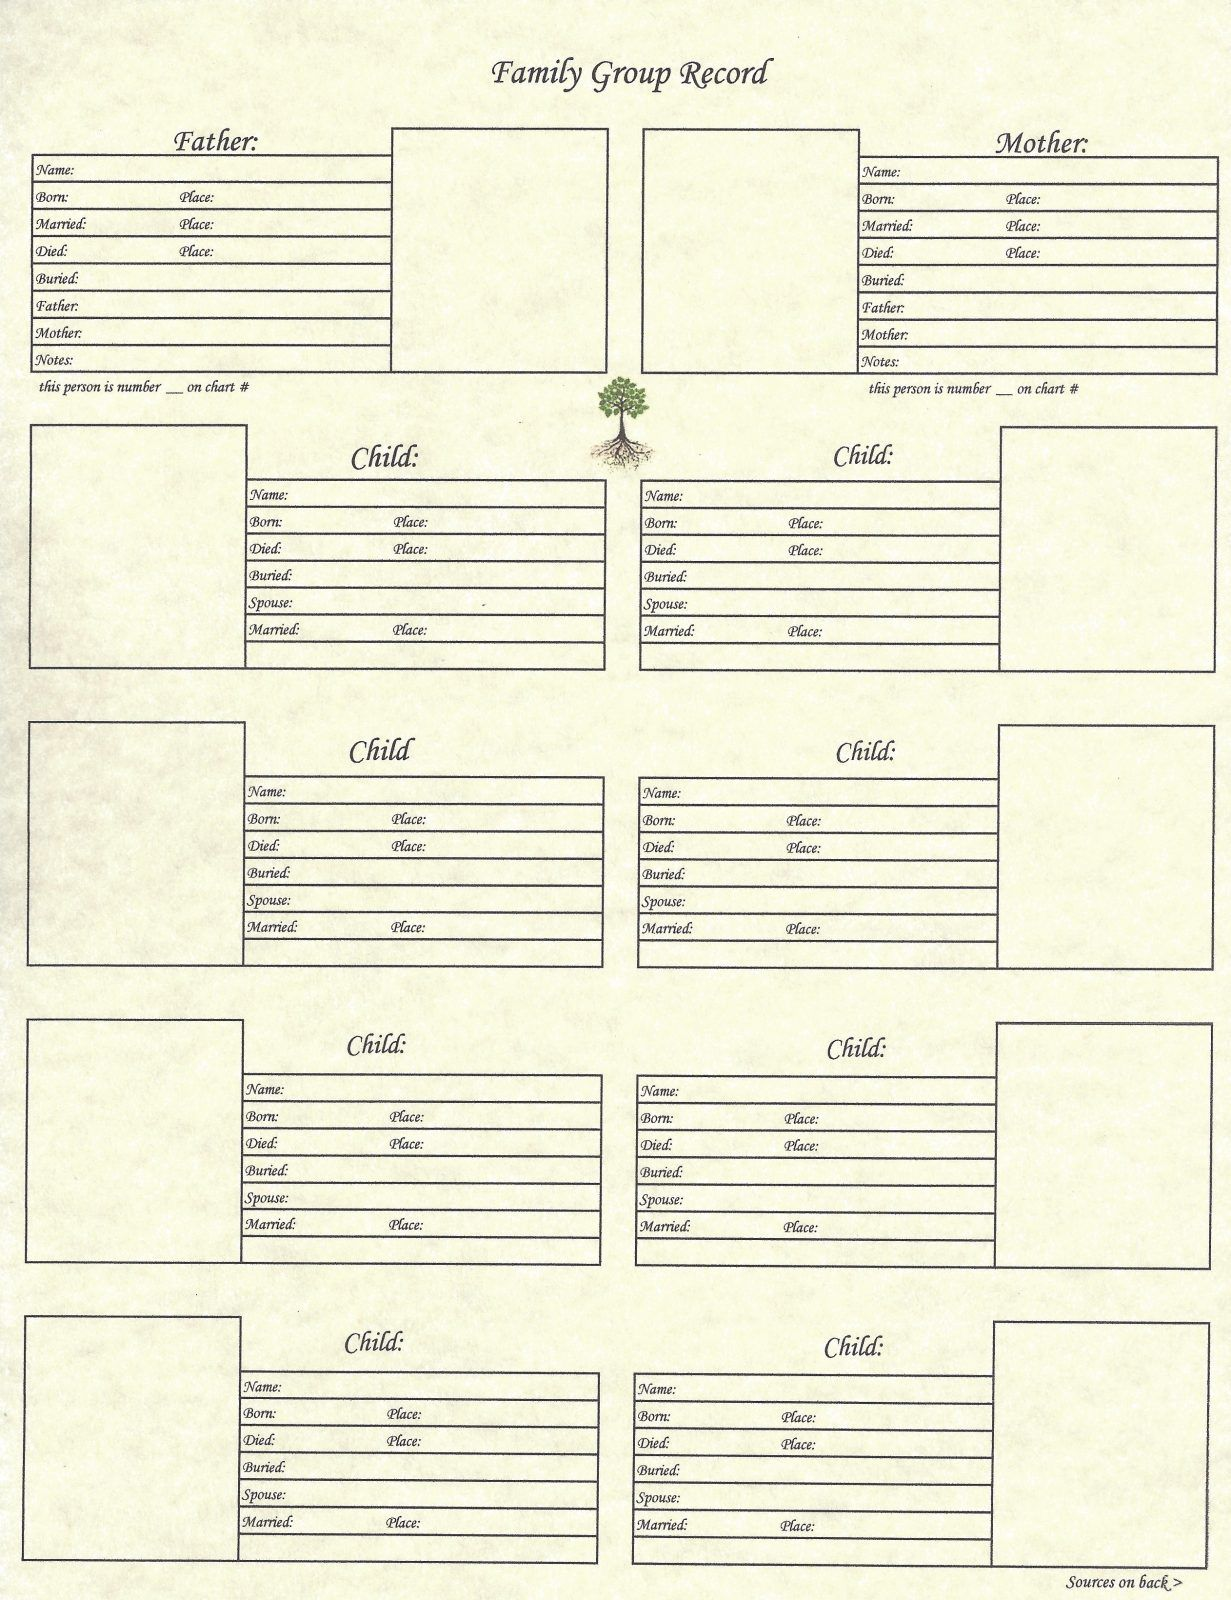 our roots 8 5 x 11 family group chart 2 genealogy